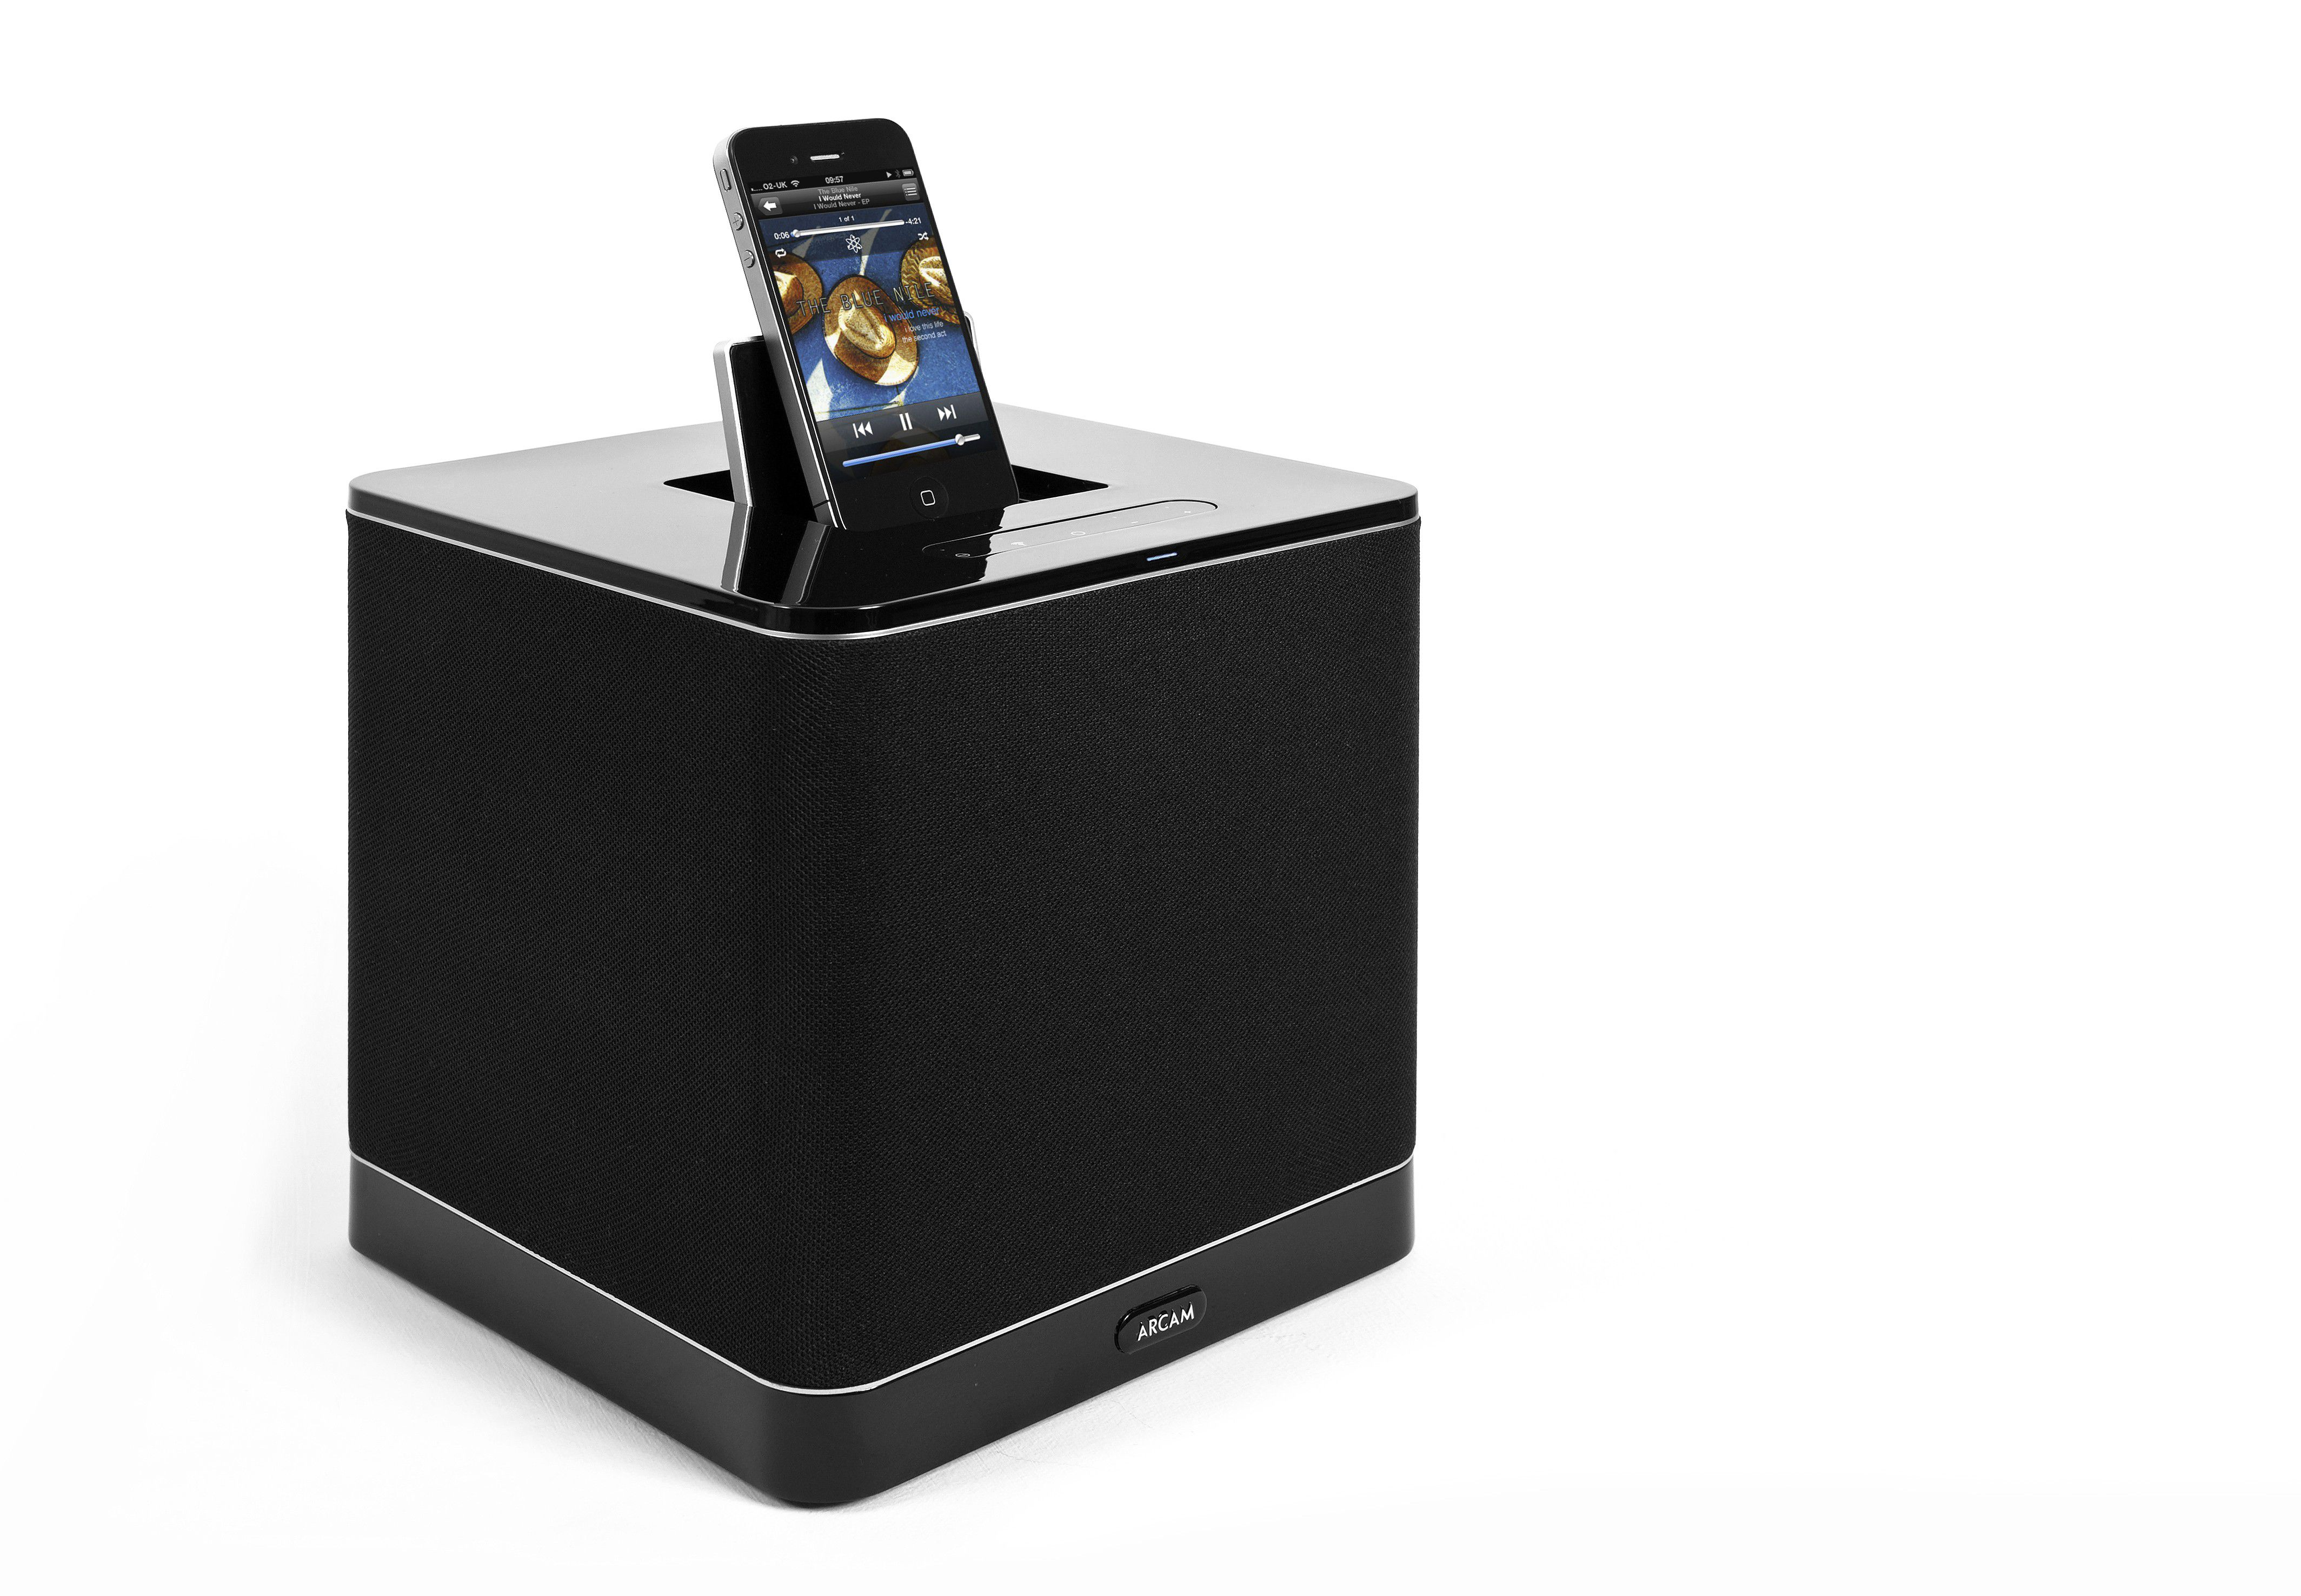 test ipod lautsprecher arcam rcube macwelt. Black Bedroom Furniture Sets. Home Design Ideas